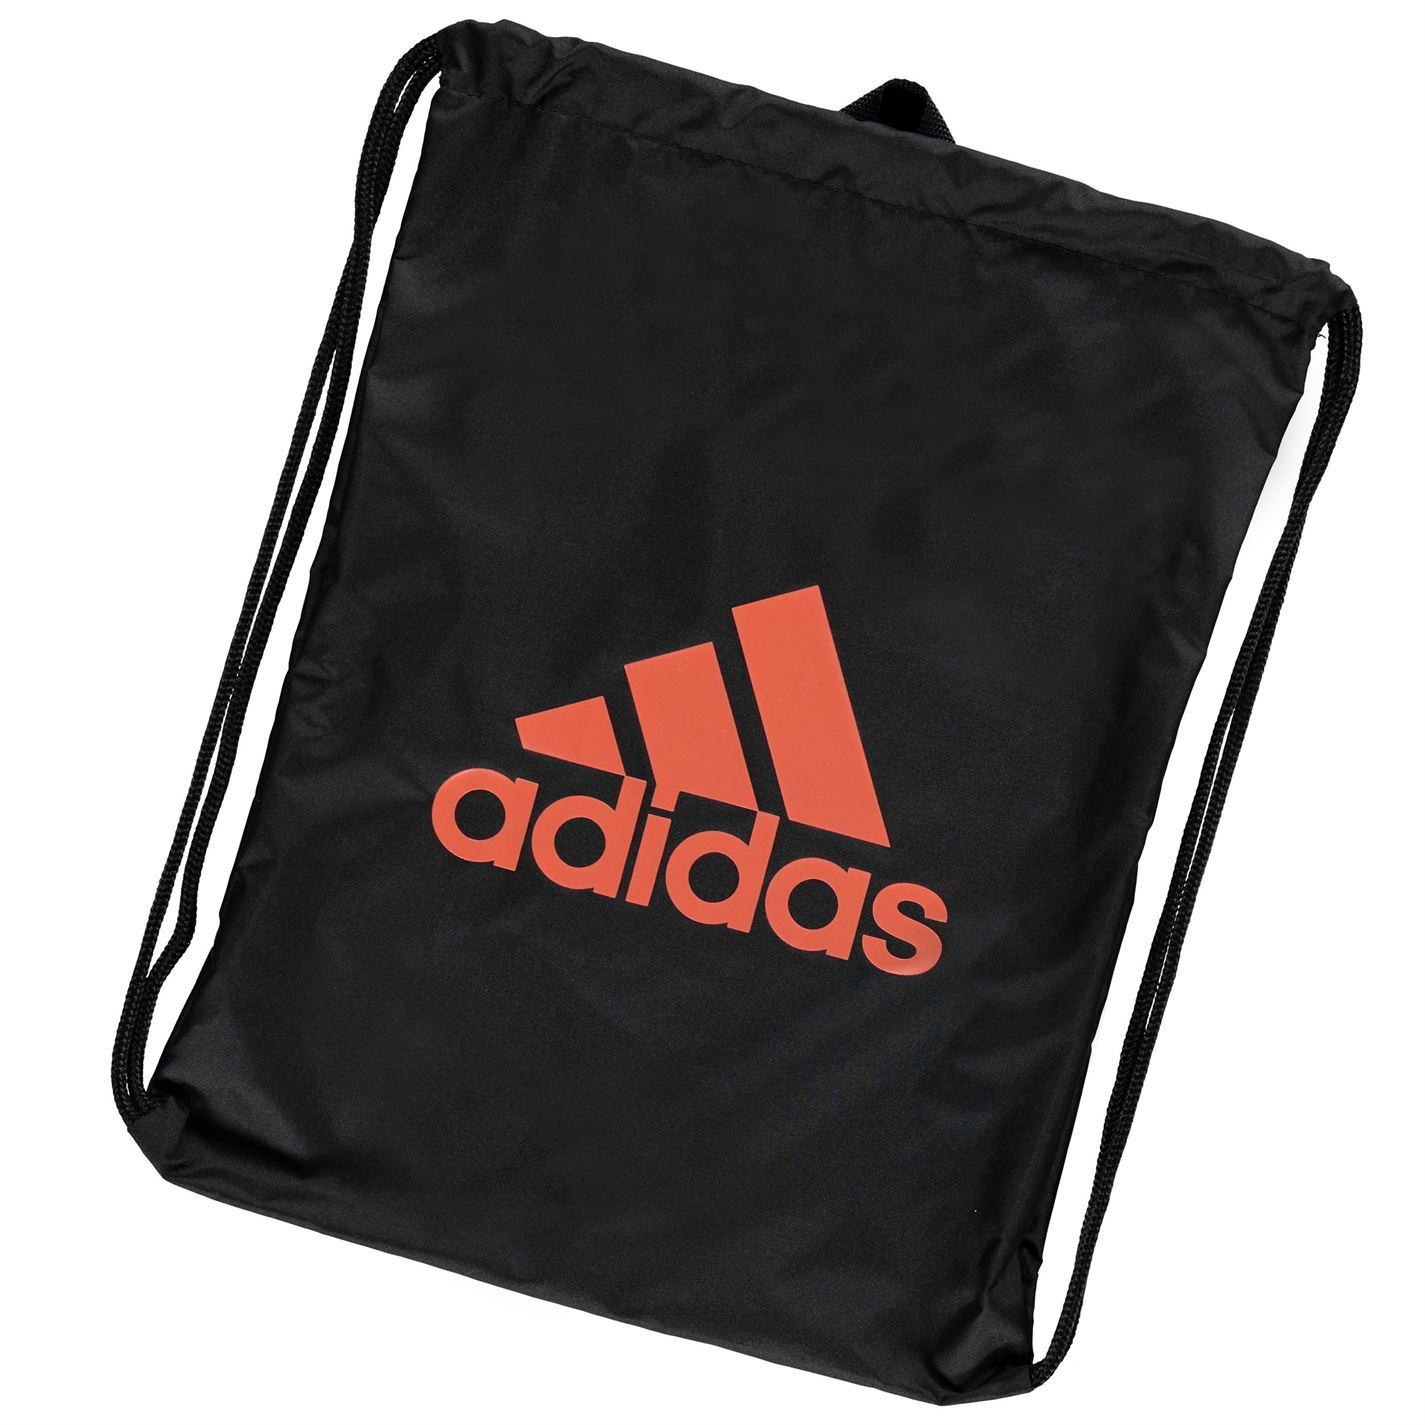 Sports Direct Adidas Gym Bag   ReGreen Springfield 51450d22c4